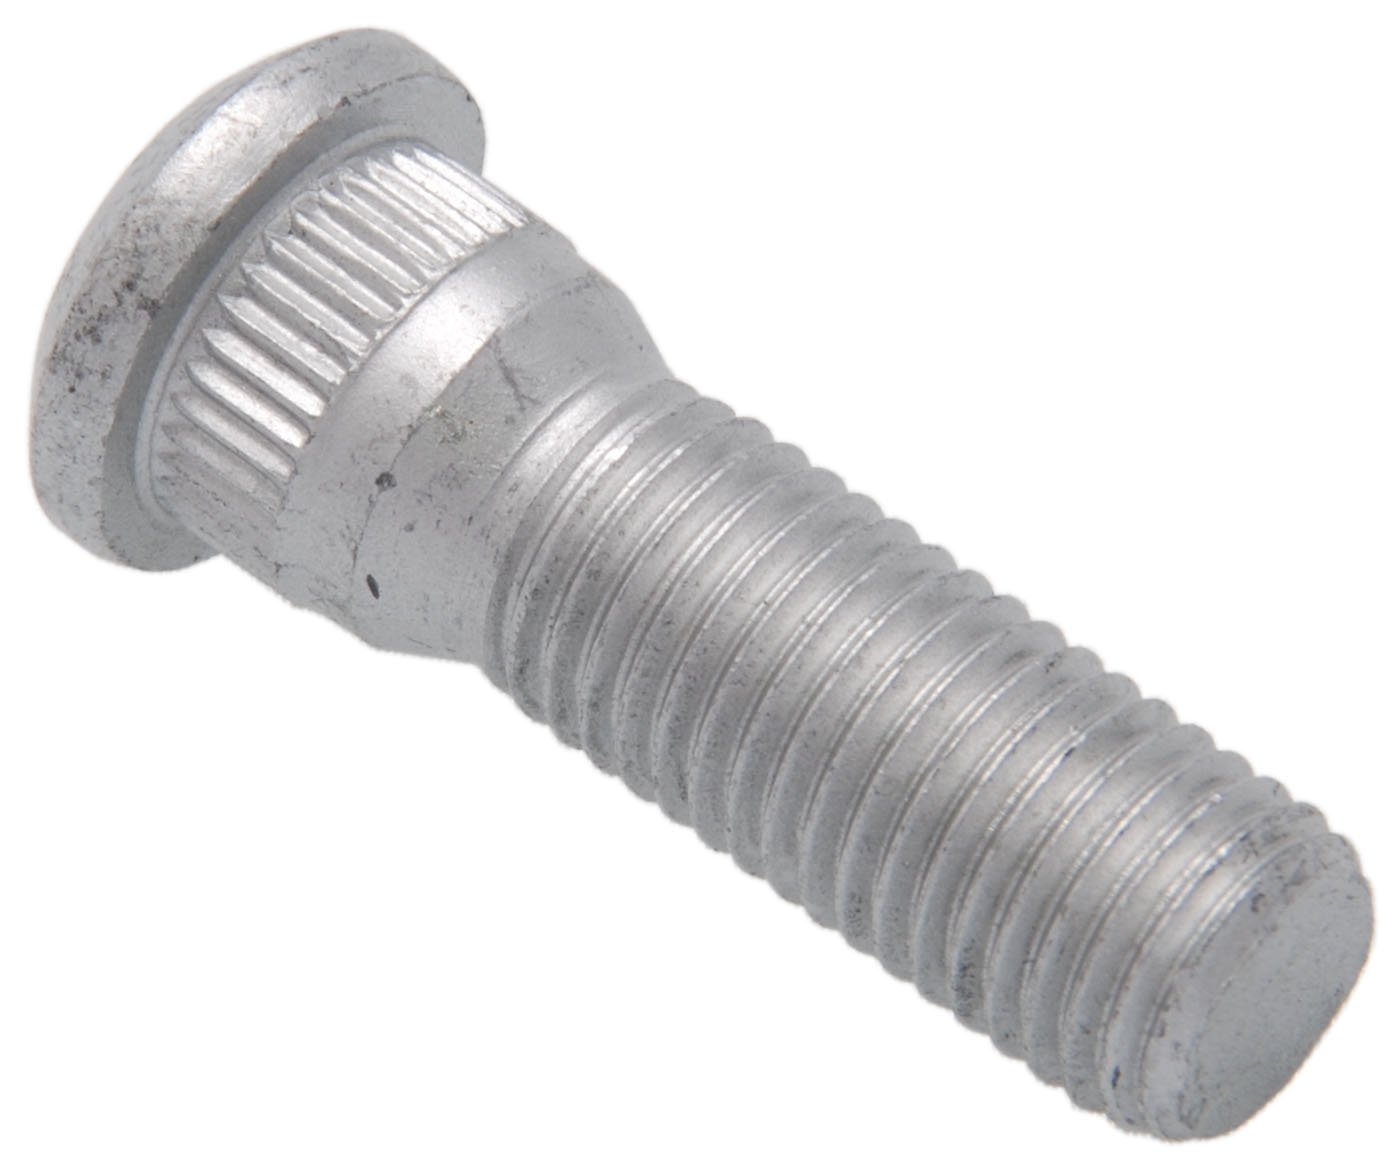 Febest 0184-001 Wheel Bolt/Lug Nut